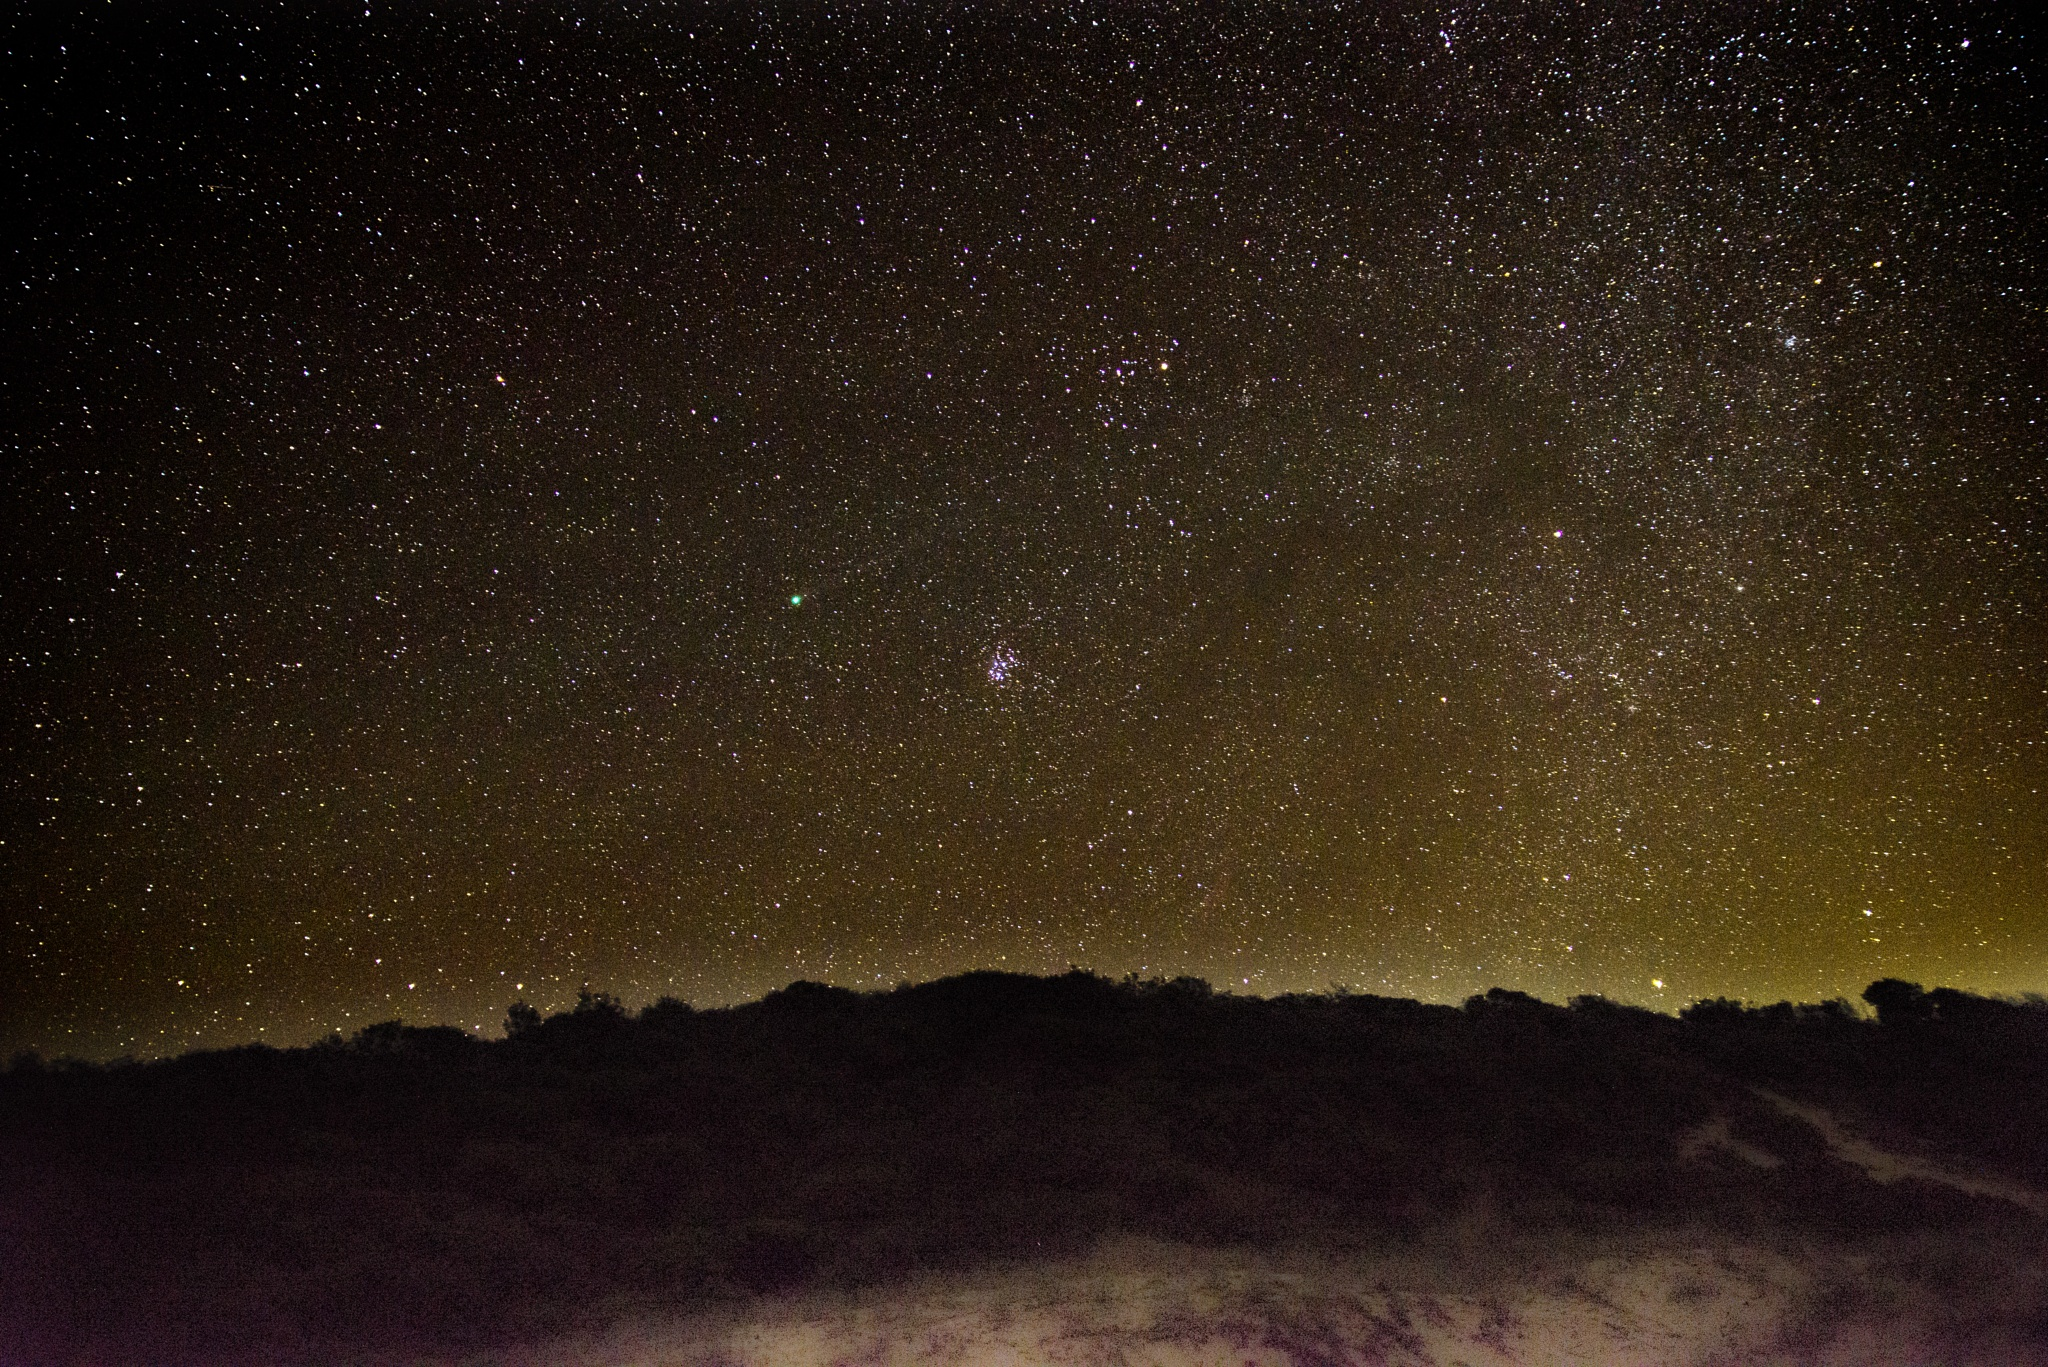 The amazing galaxy from an Australian Beach by Graham Levi